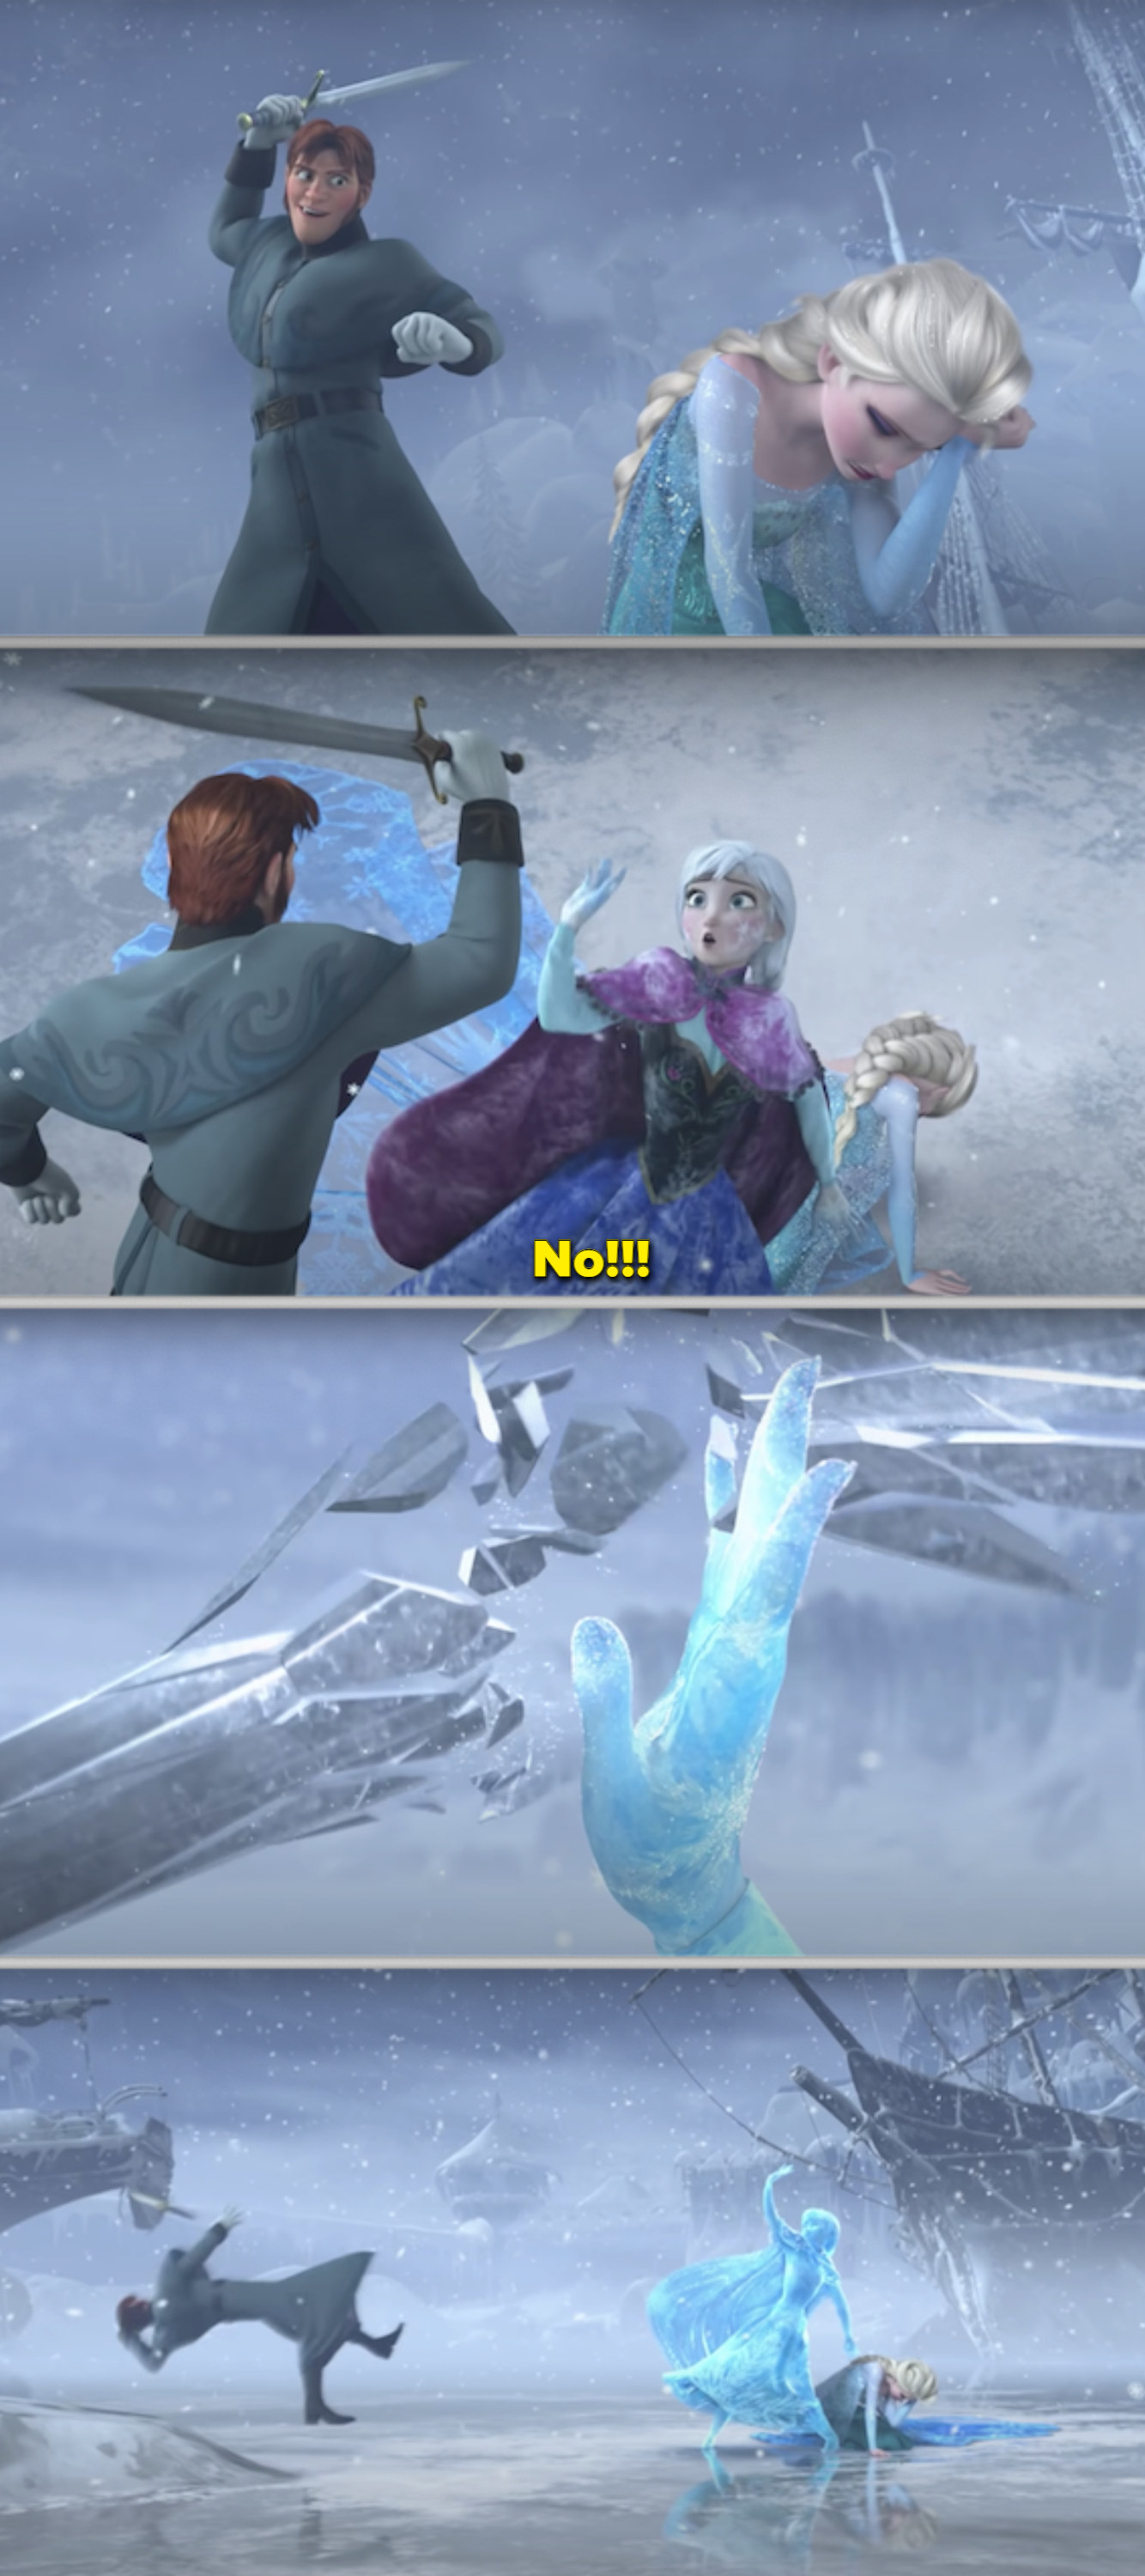 Anna jumping in front of the sword and turning to ice